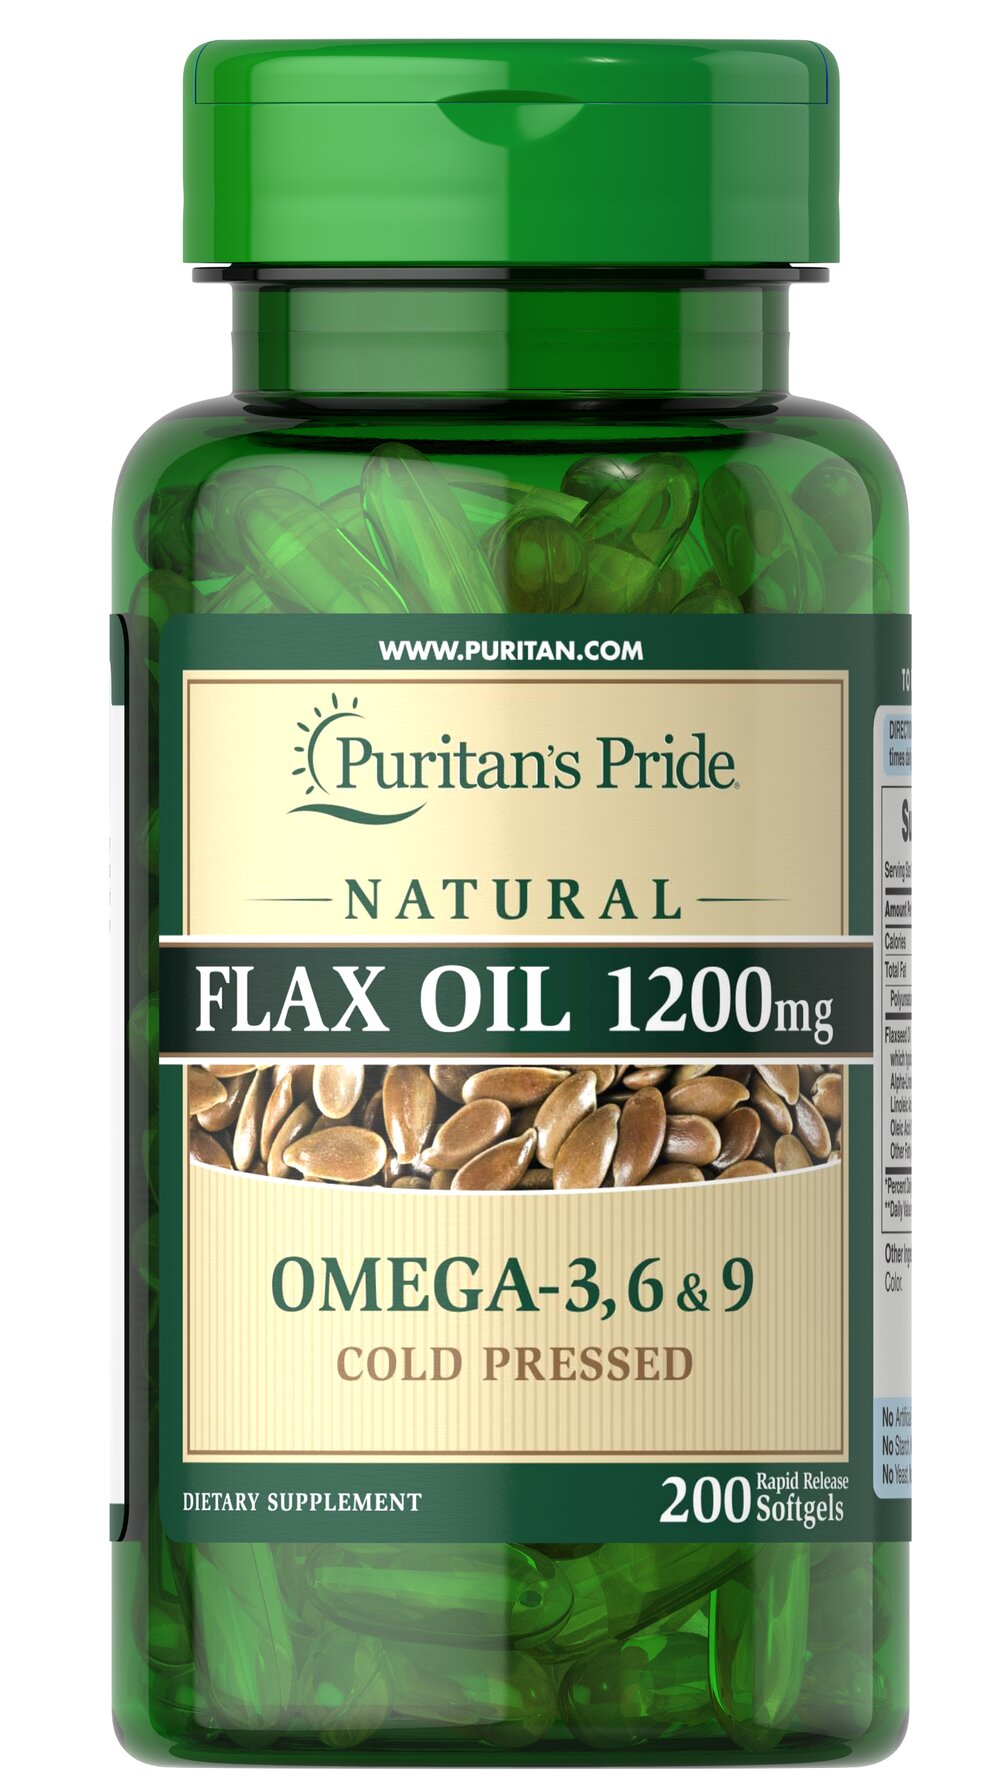 Natural Flax Oil 1200 mg <p>Flaxseed — one of the most concentrated vegetarian source of <strong>Omega-3 fatty acids</strong> found in nature — contributes to heart and while providing an energy source for the body.** Our high-quality natural <strong>Flaxseed Oil</strong> is dispensed and processed without solvents, under a nitrogen blanket and special yellow lights, then encased in a protective amber-colored gelatin shell to retain its integrity.</p> 200 Soft